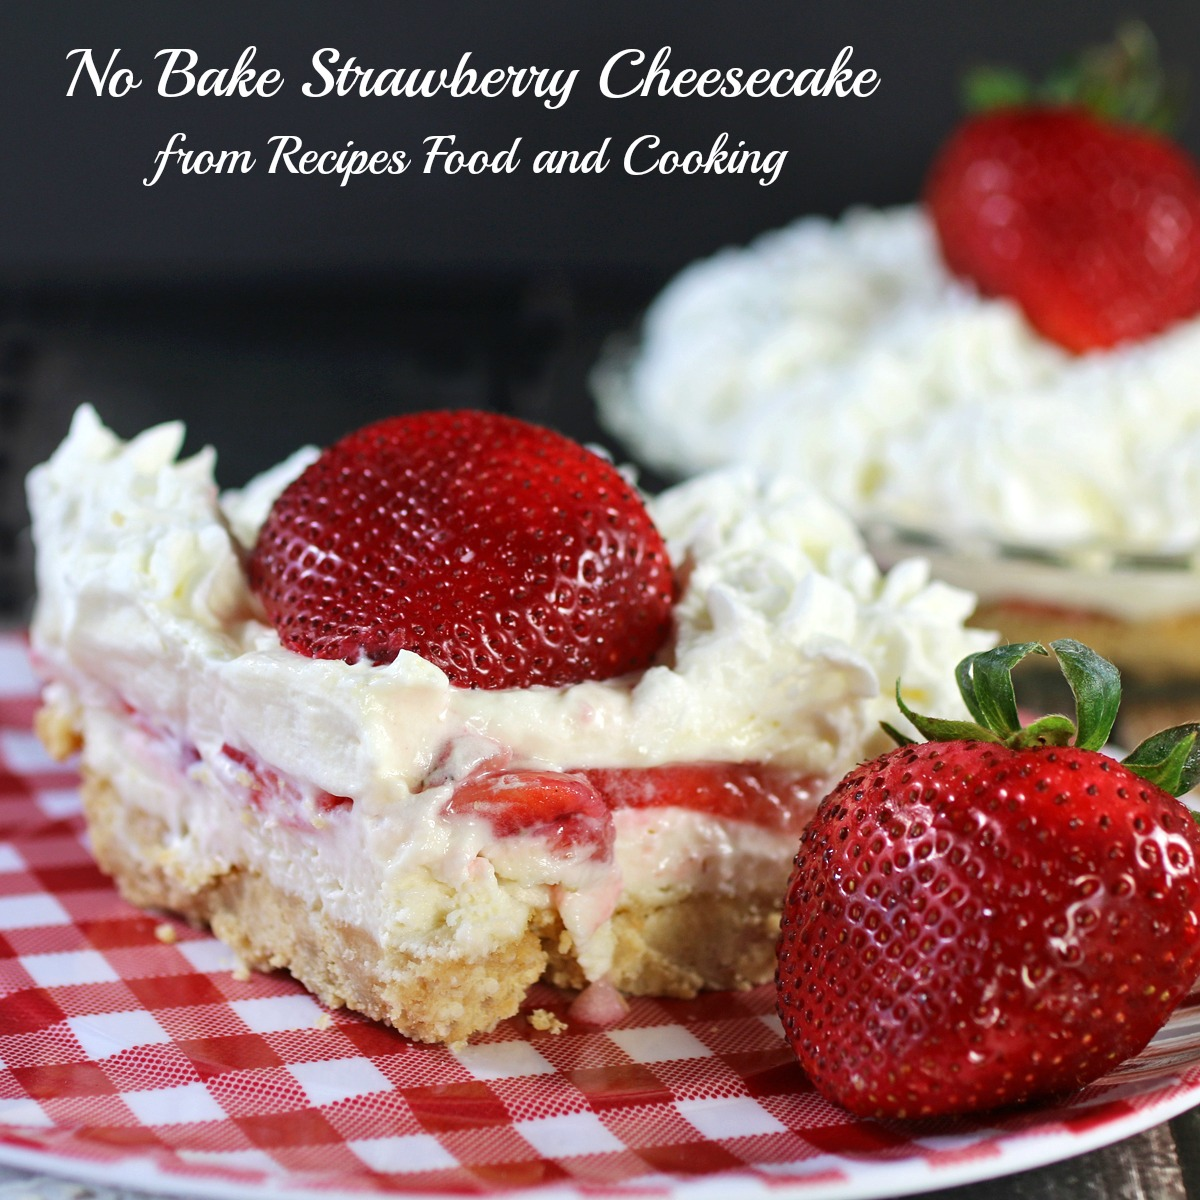 No Bake Strawberry Cheesecake - Recipes Food and Cooking